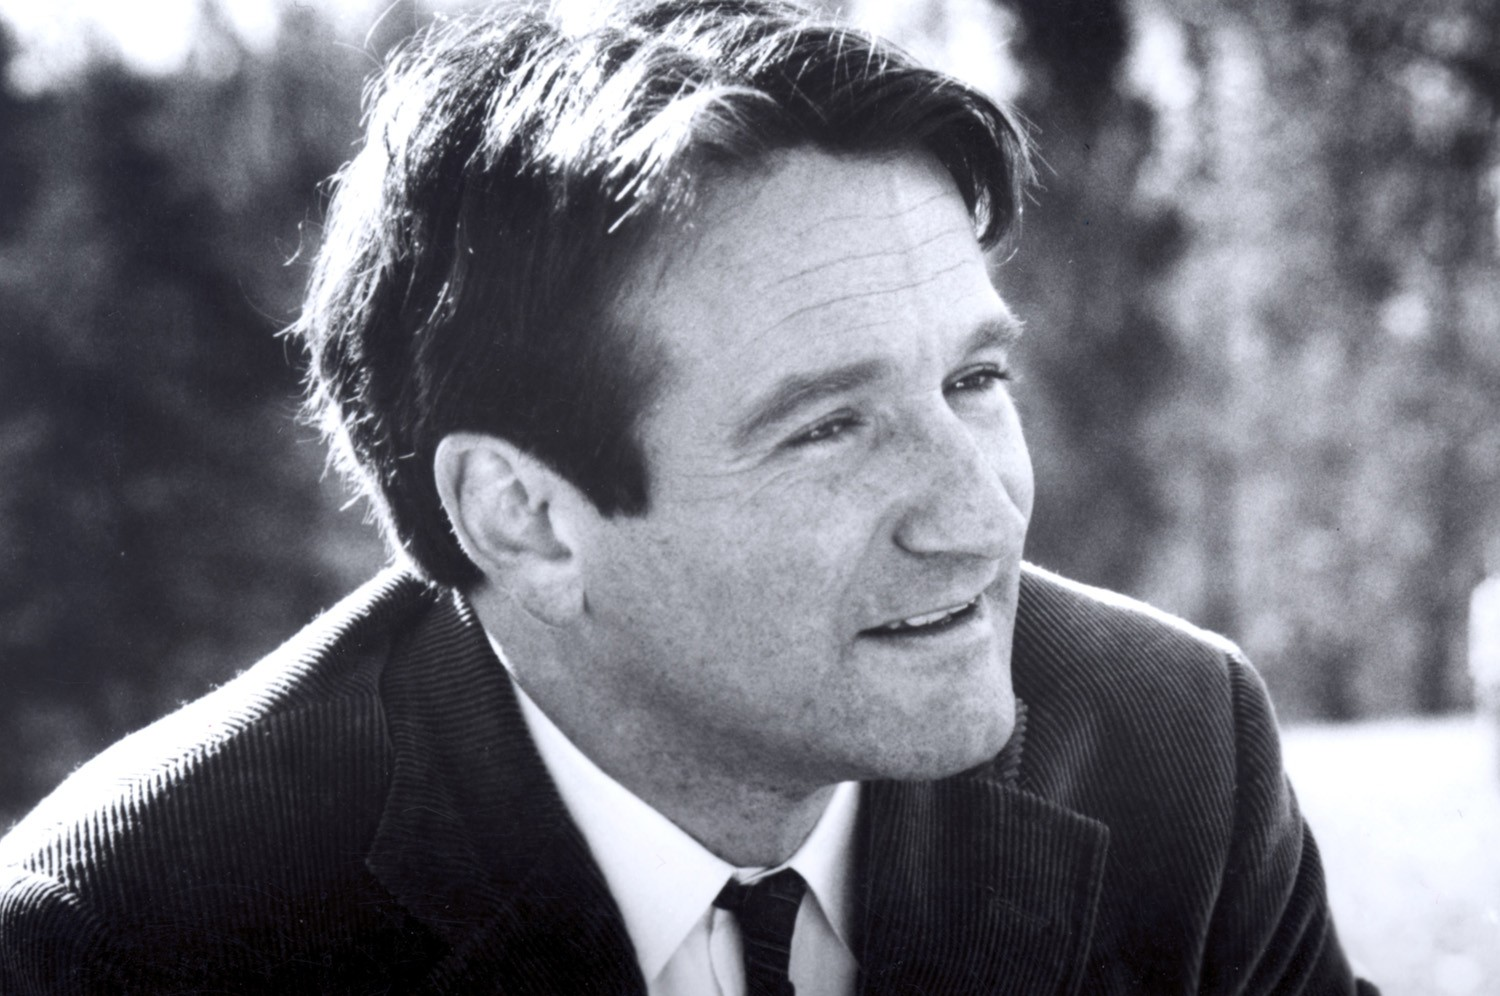 dead poets Dead poets society is a 1989 american drama film directed by peter weir, written by tom schulman, and starring robin williamsset in 1959 at the fictional elite conservative vermont boarding school welton academy, it tells the story of an english teacher who inspires his students through his teaching of poetry.